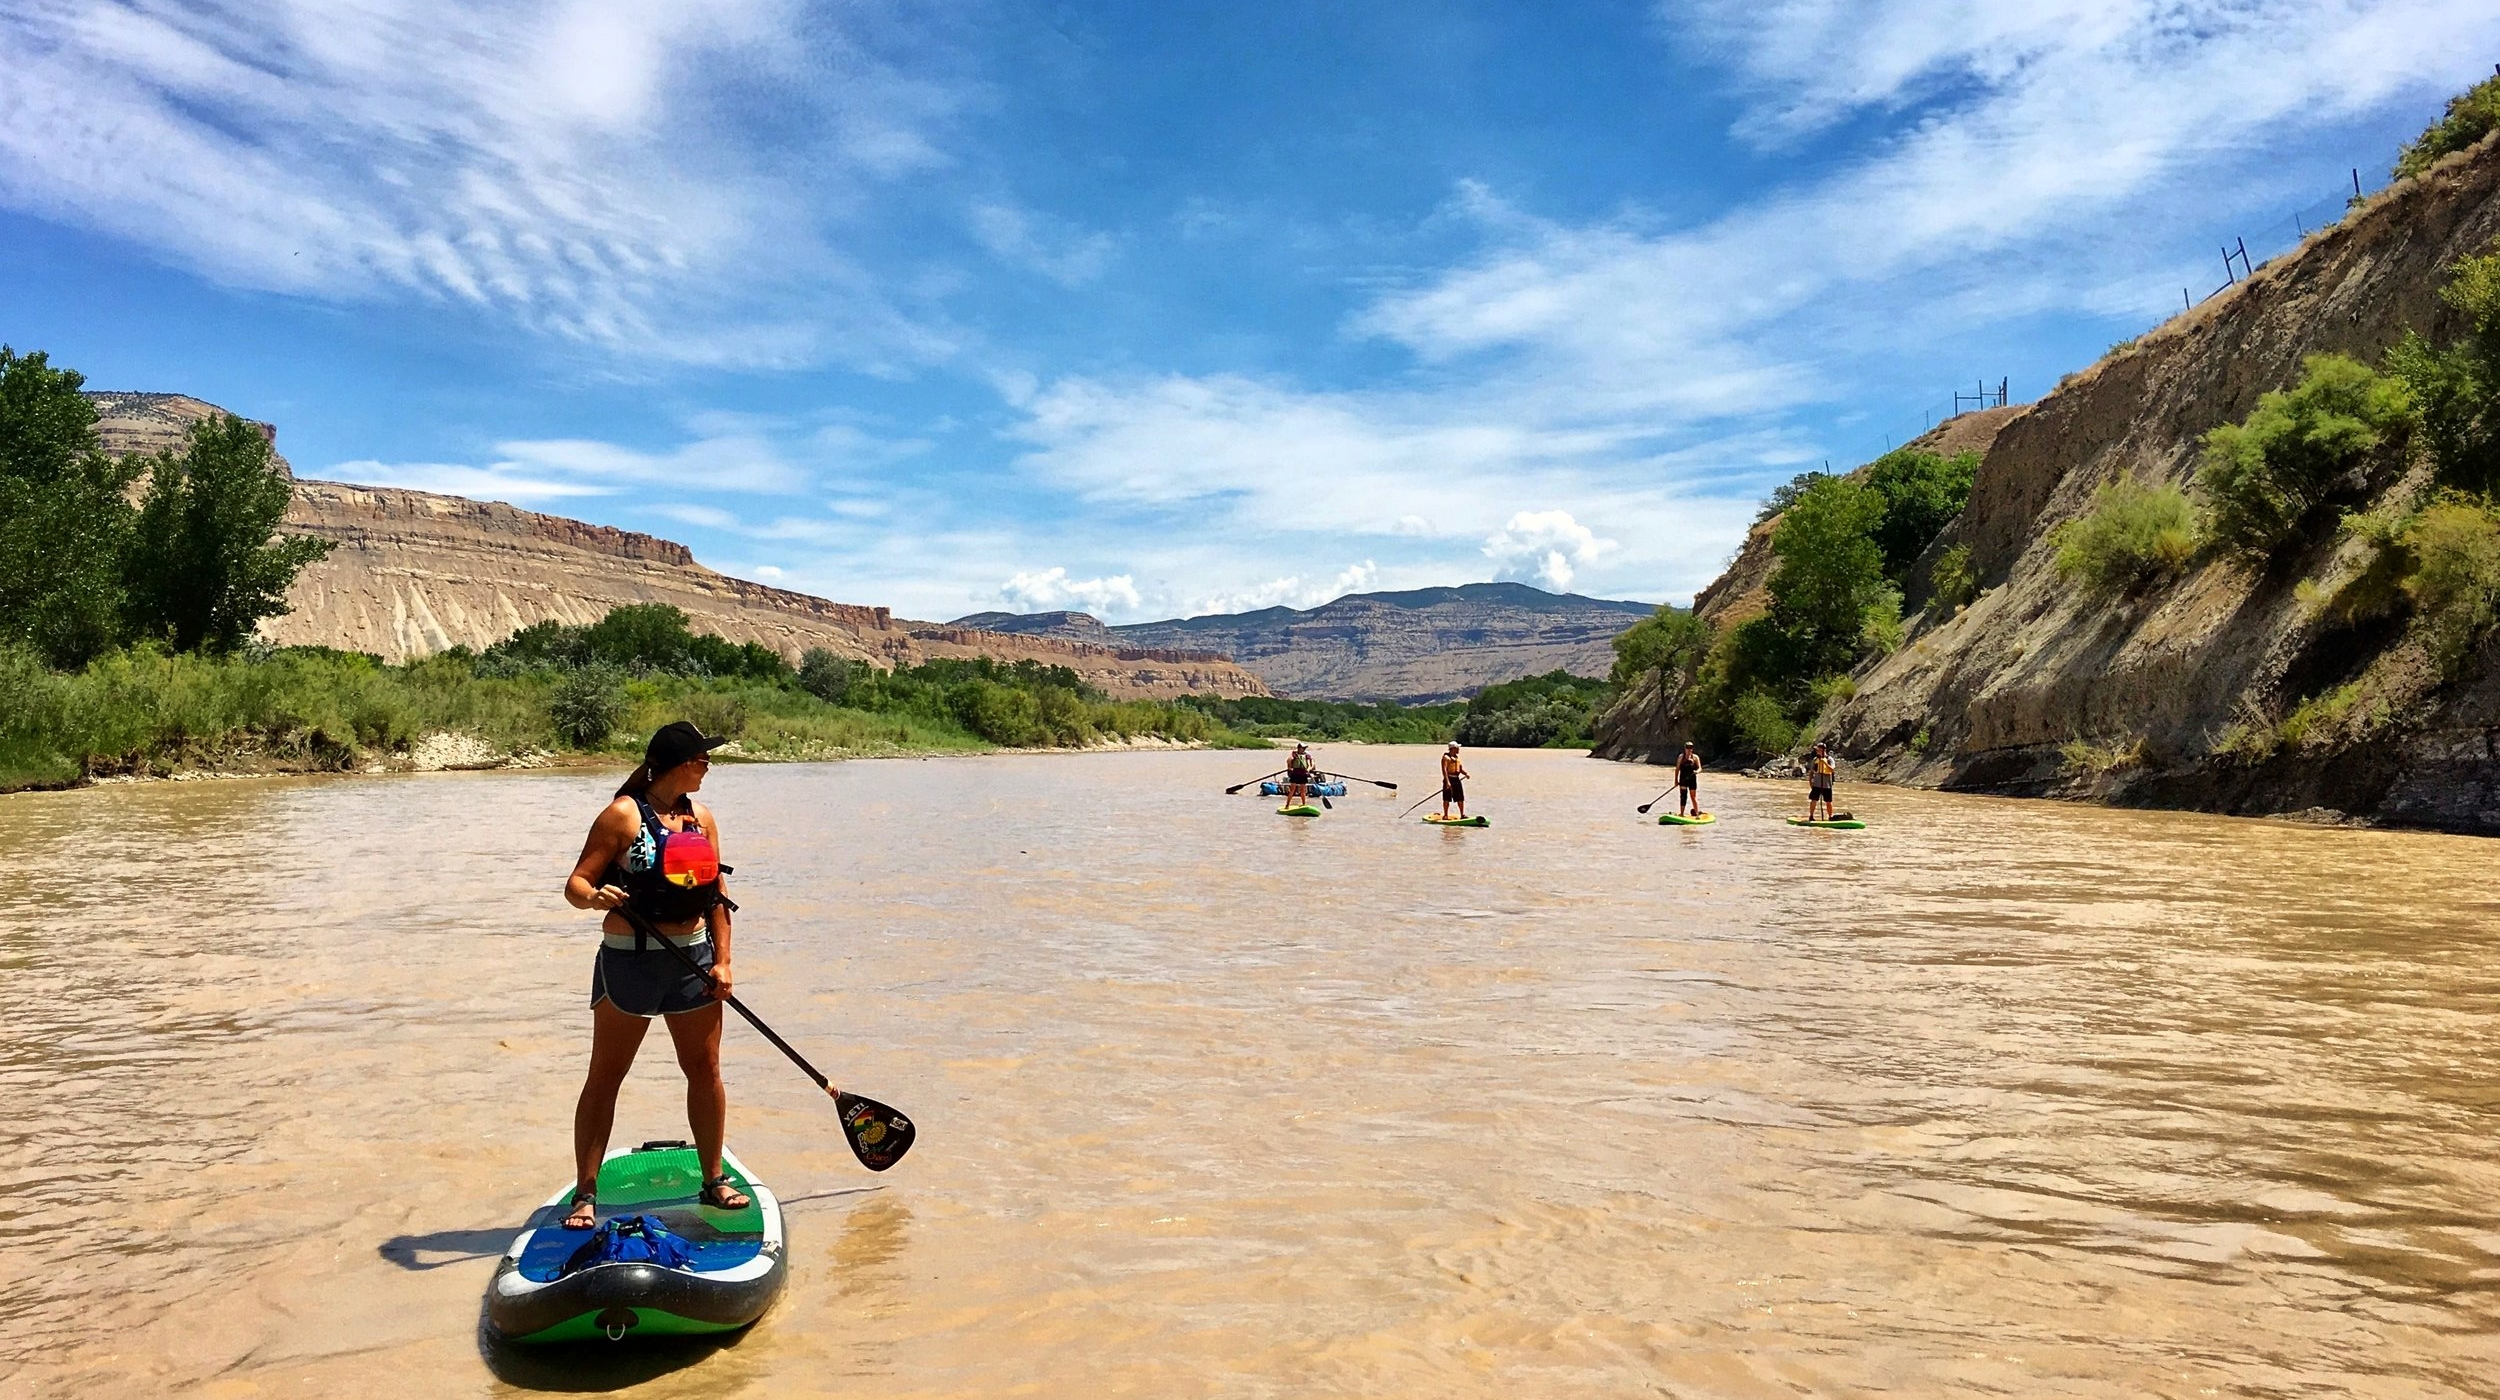 Stand up paddle boarding the Colorado River in Grand Junction Colorado